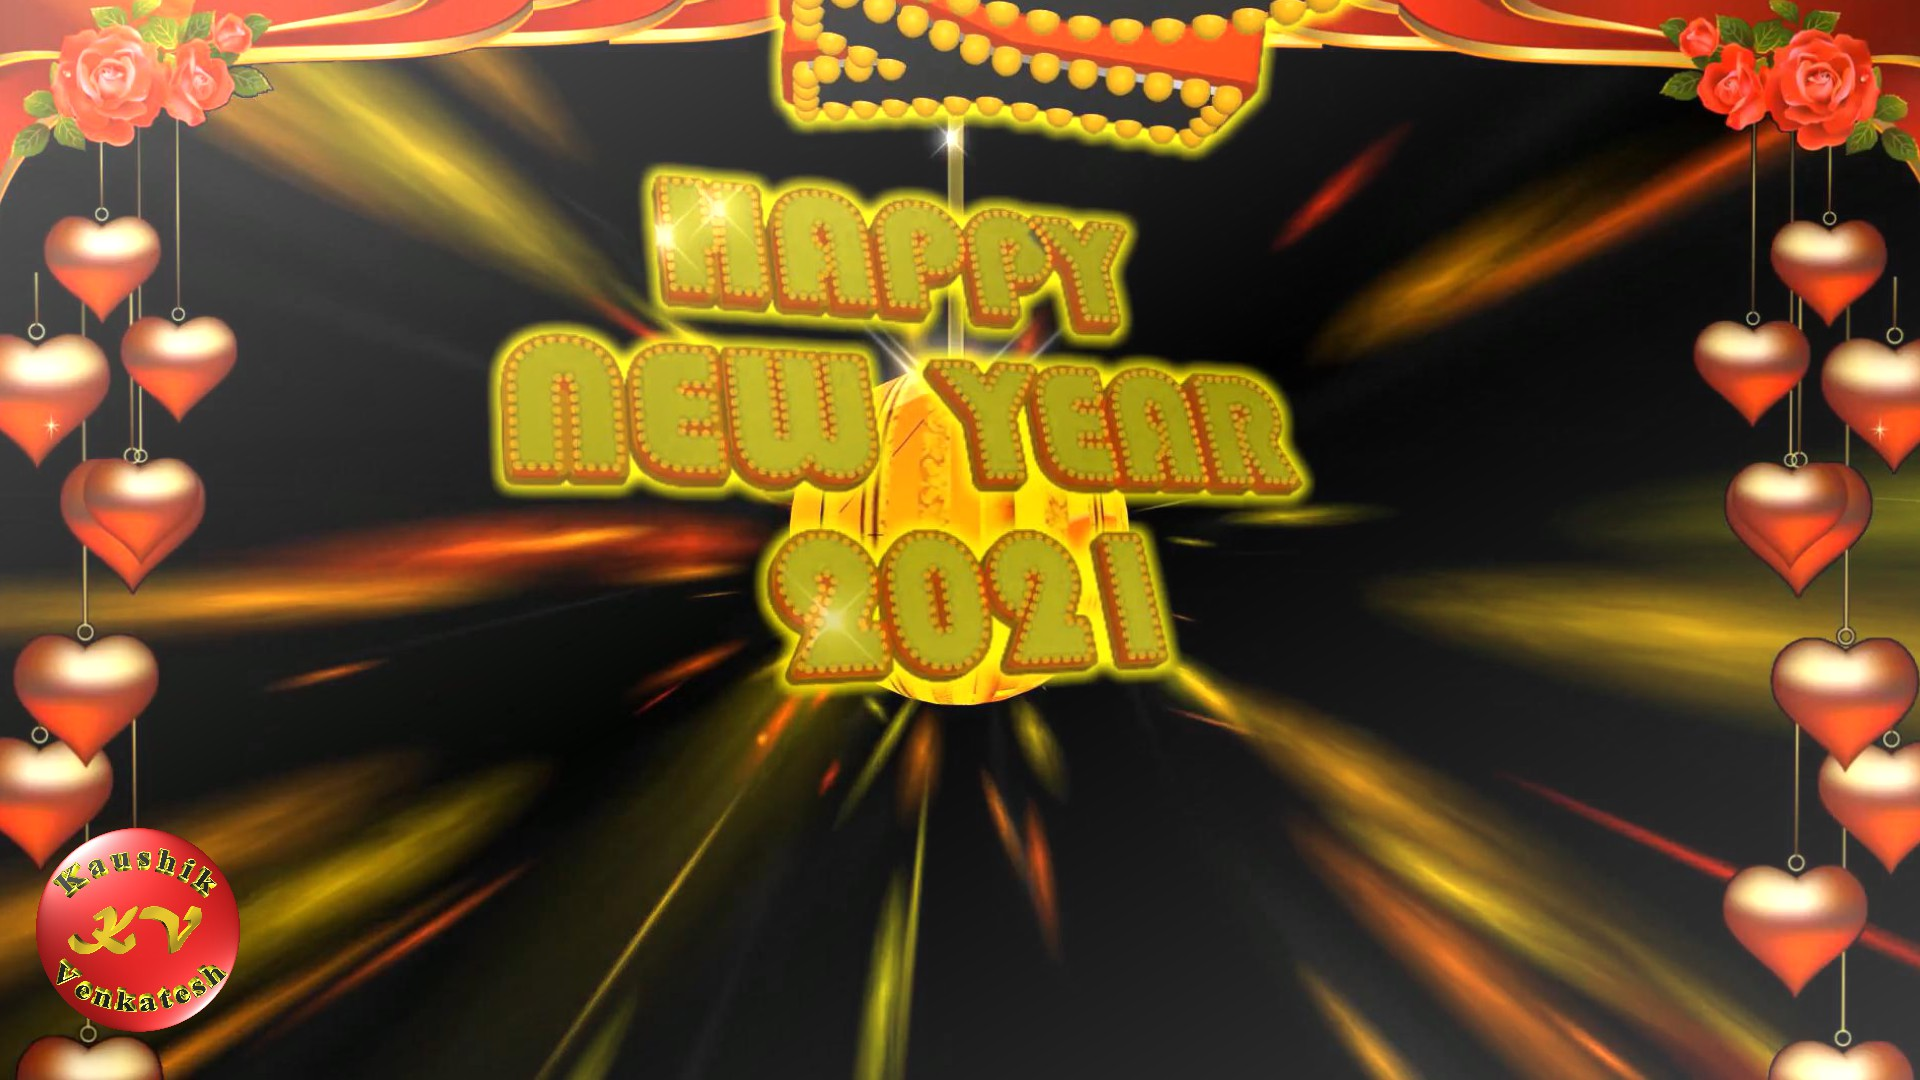 Greetings Image for the New Year 2021